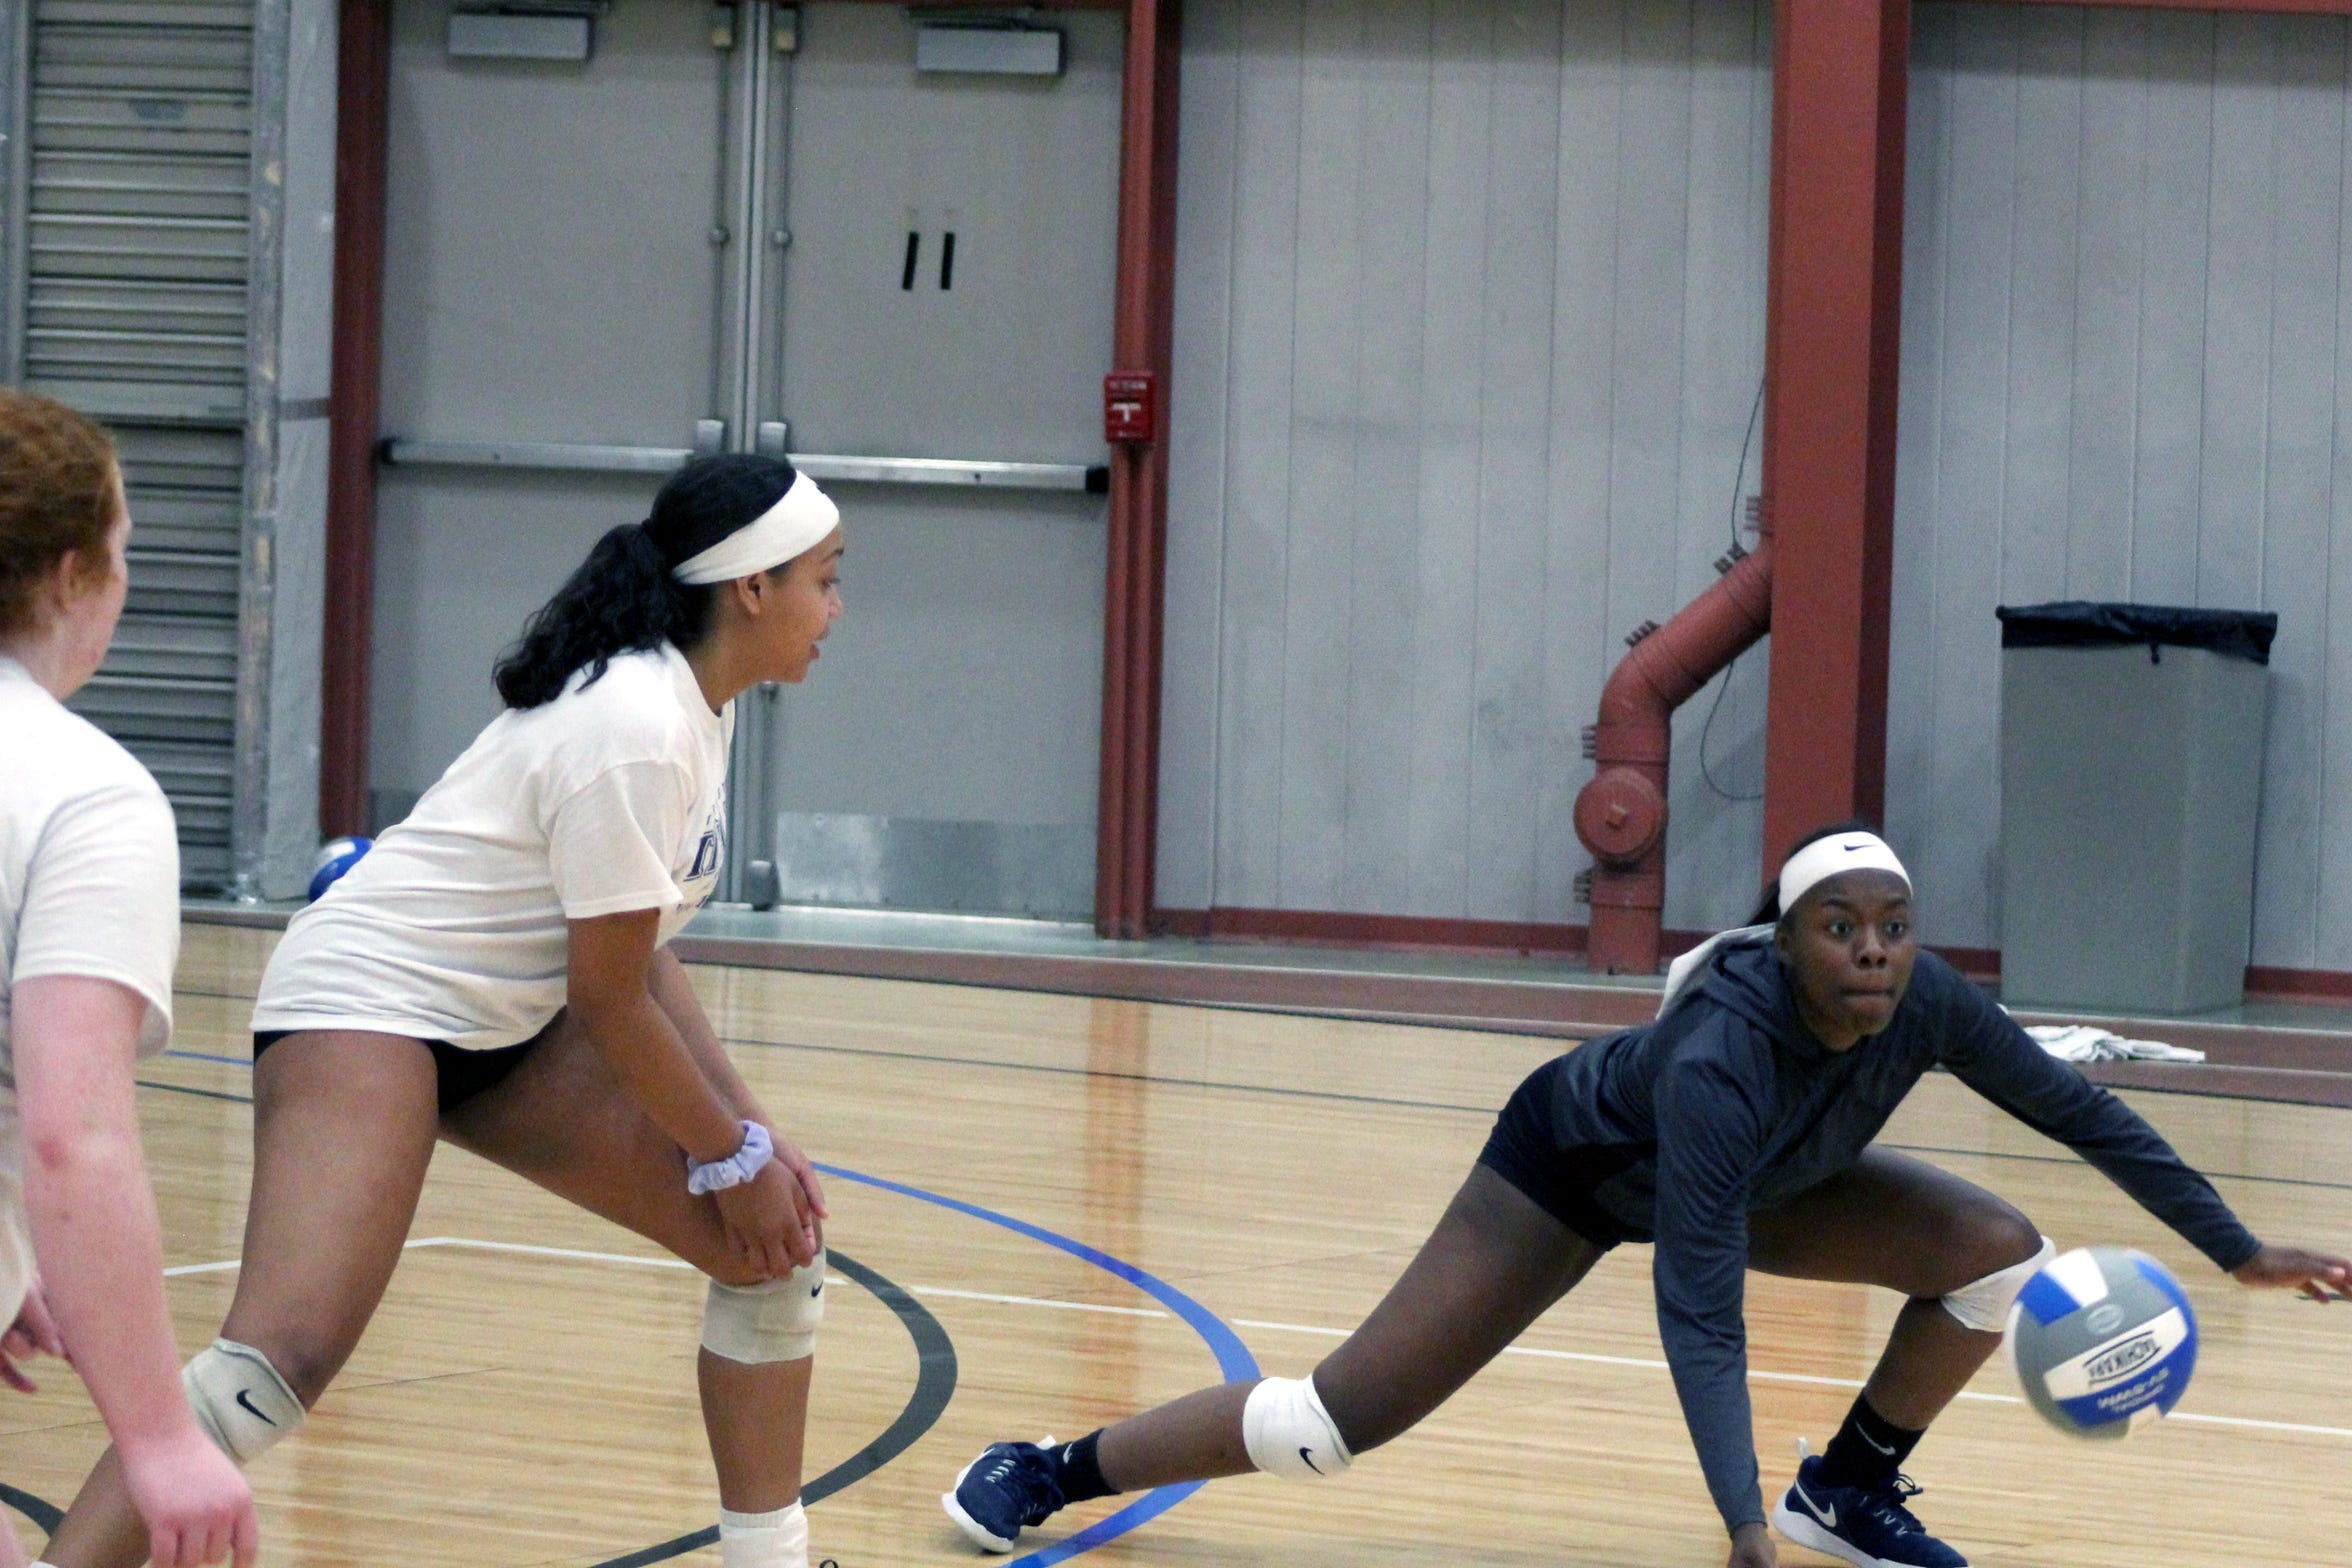 Terra State Community College volleyball players dive for a ball during practice Oct. 18.